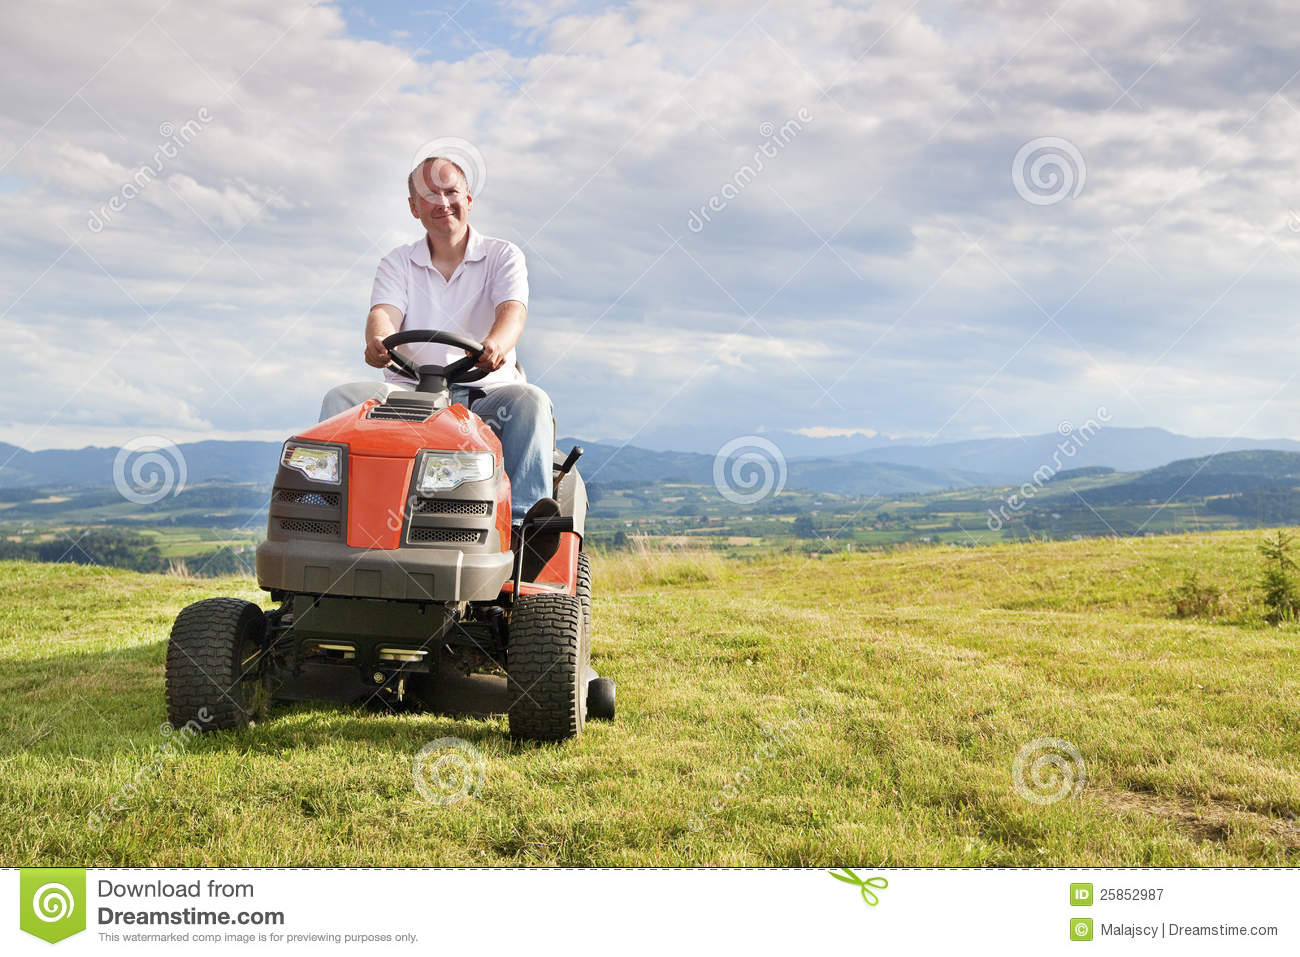 Man Riding Lawn Mower : Man riding a lawn tractor stock image of equipment